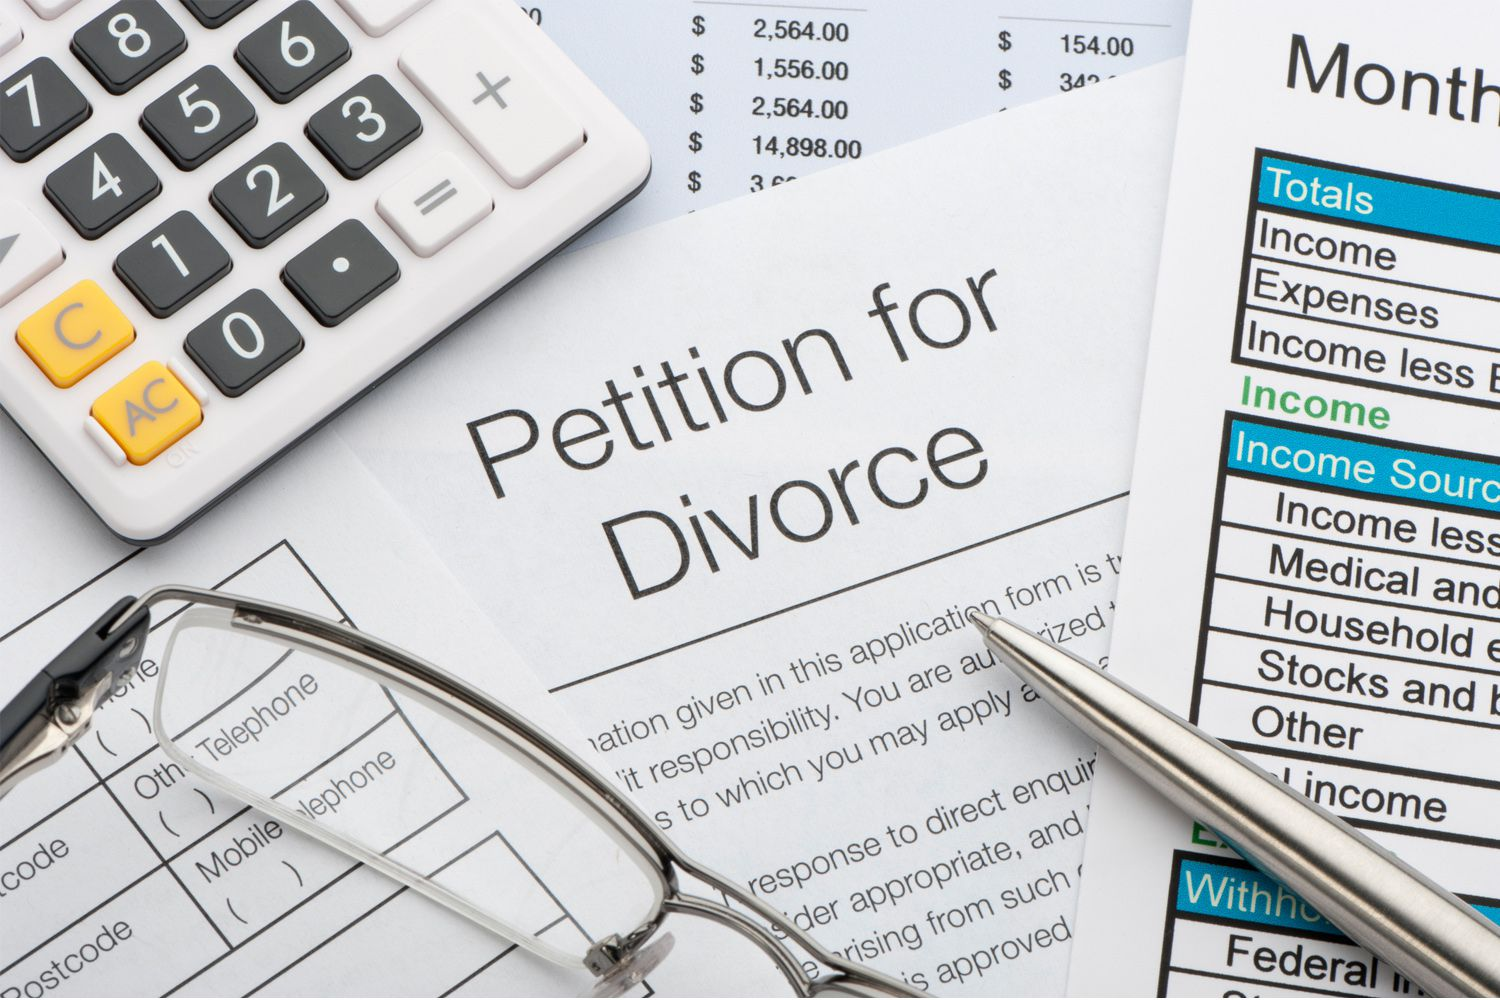 Filing An Original Petition For Divorce